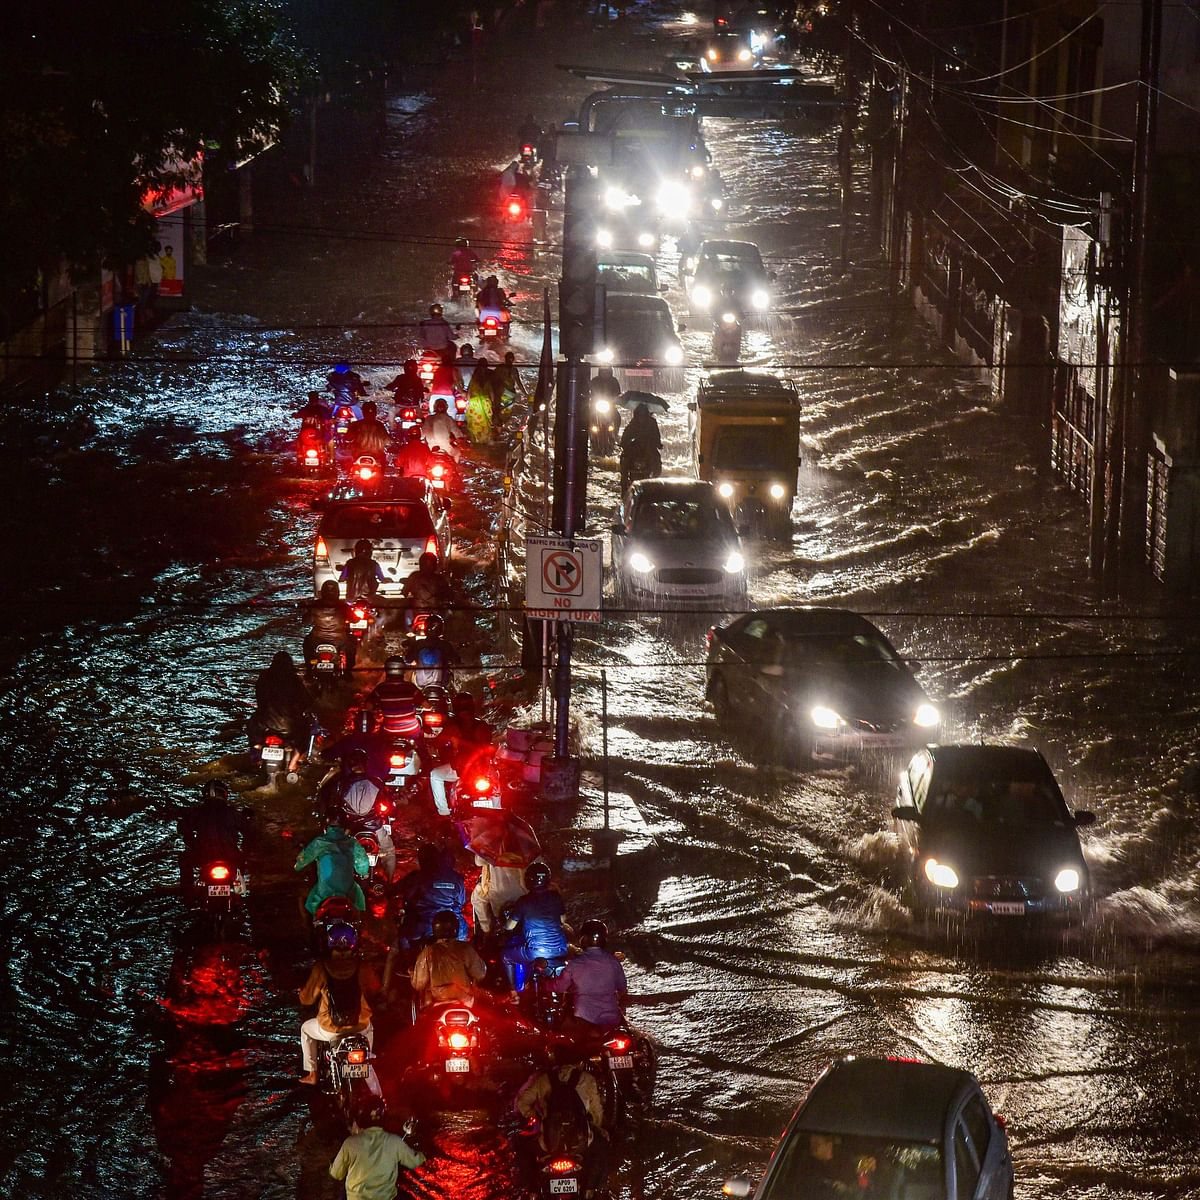 Days after deluge, heavy downpour brings another bout of flash floods to Hyderabad